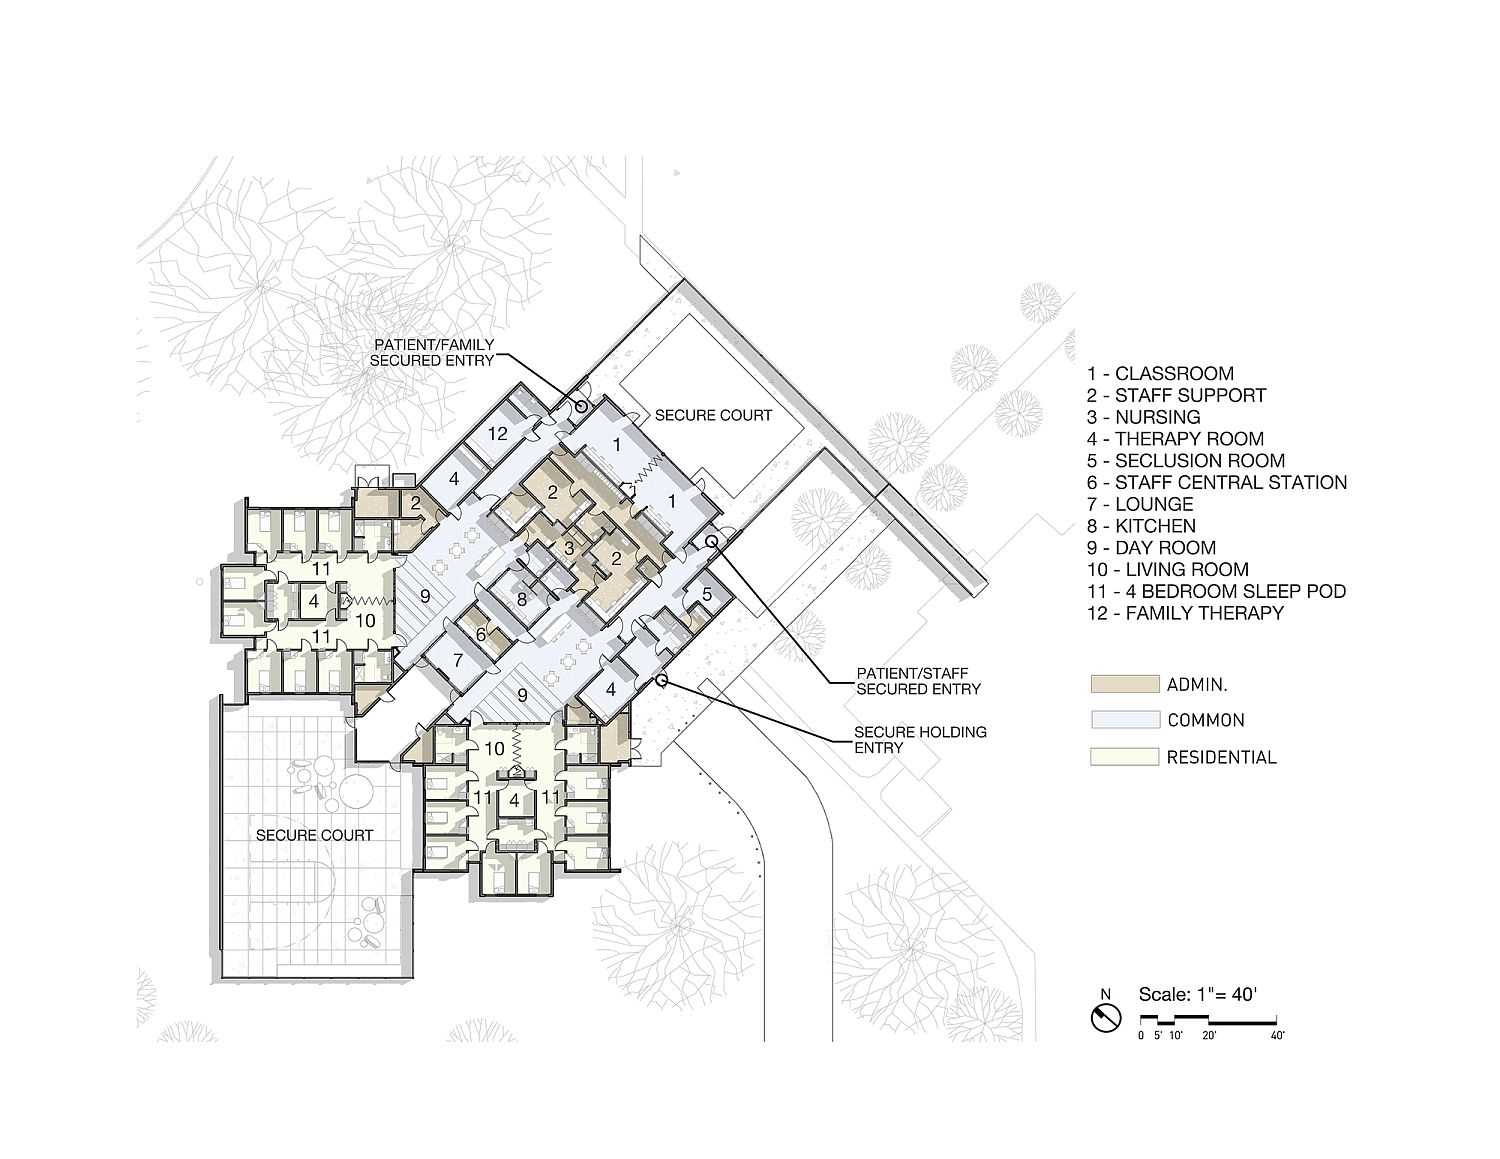 Design plan of Trillium Secure Adolescent Inpatient Facility